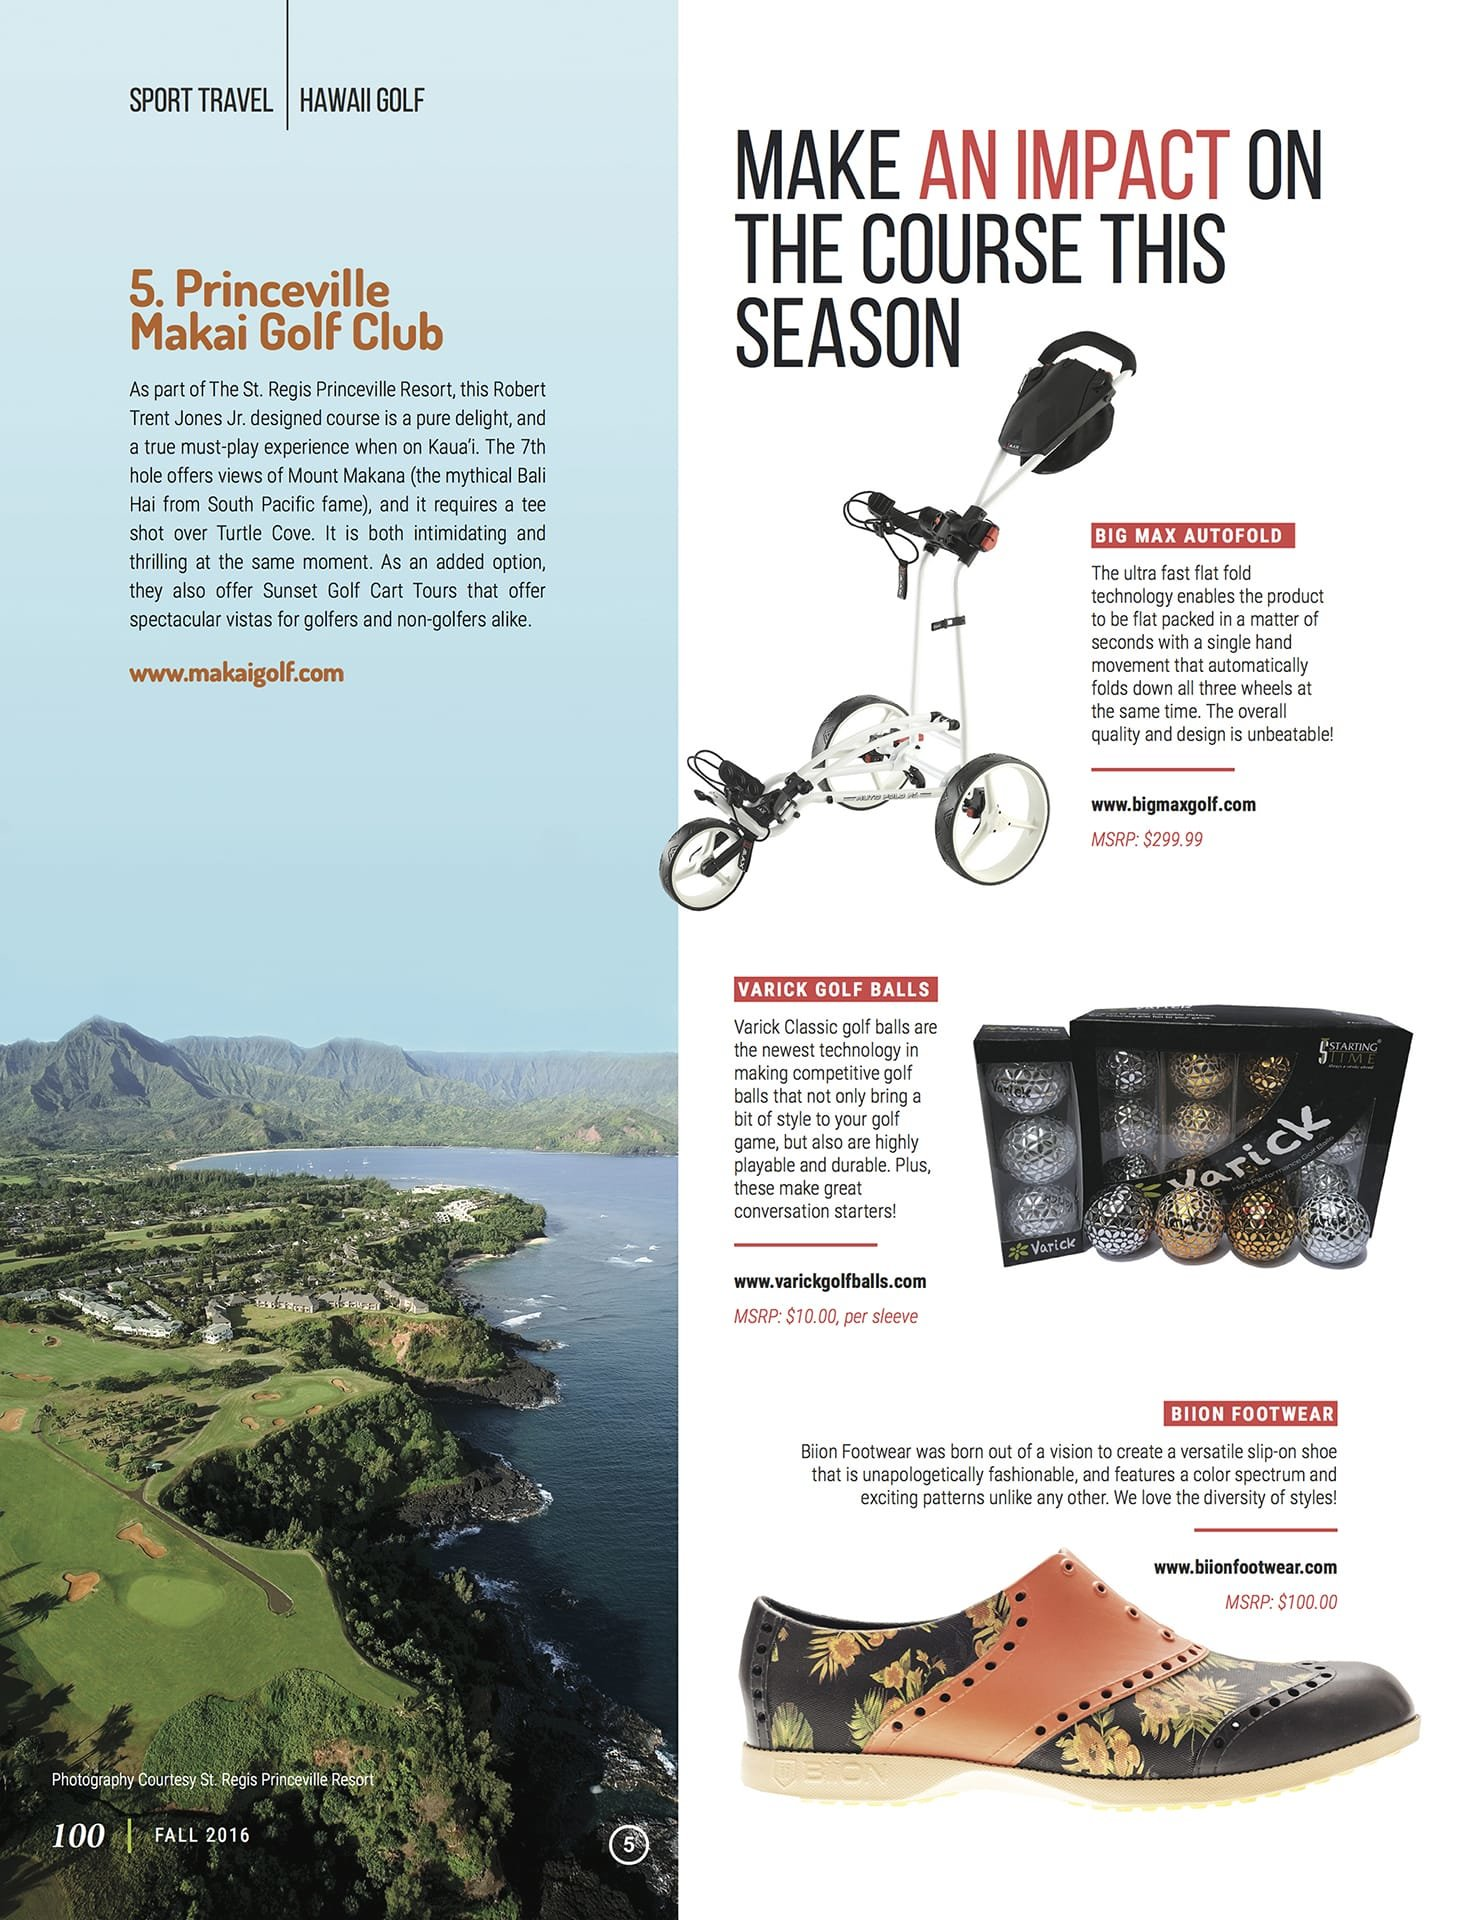 luxegetaways_fall2016_hawaii-golf_3